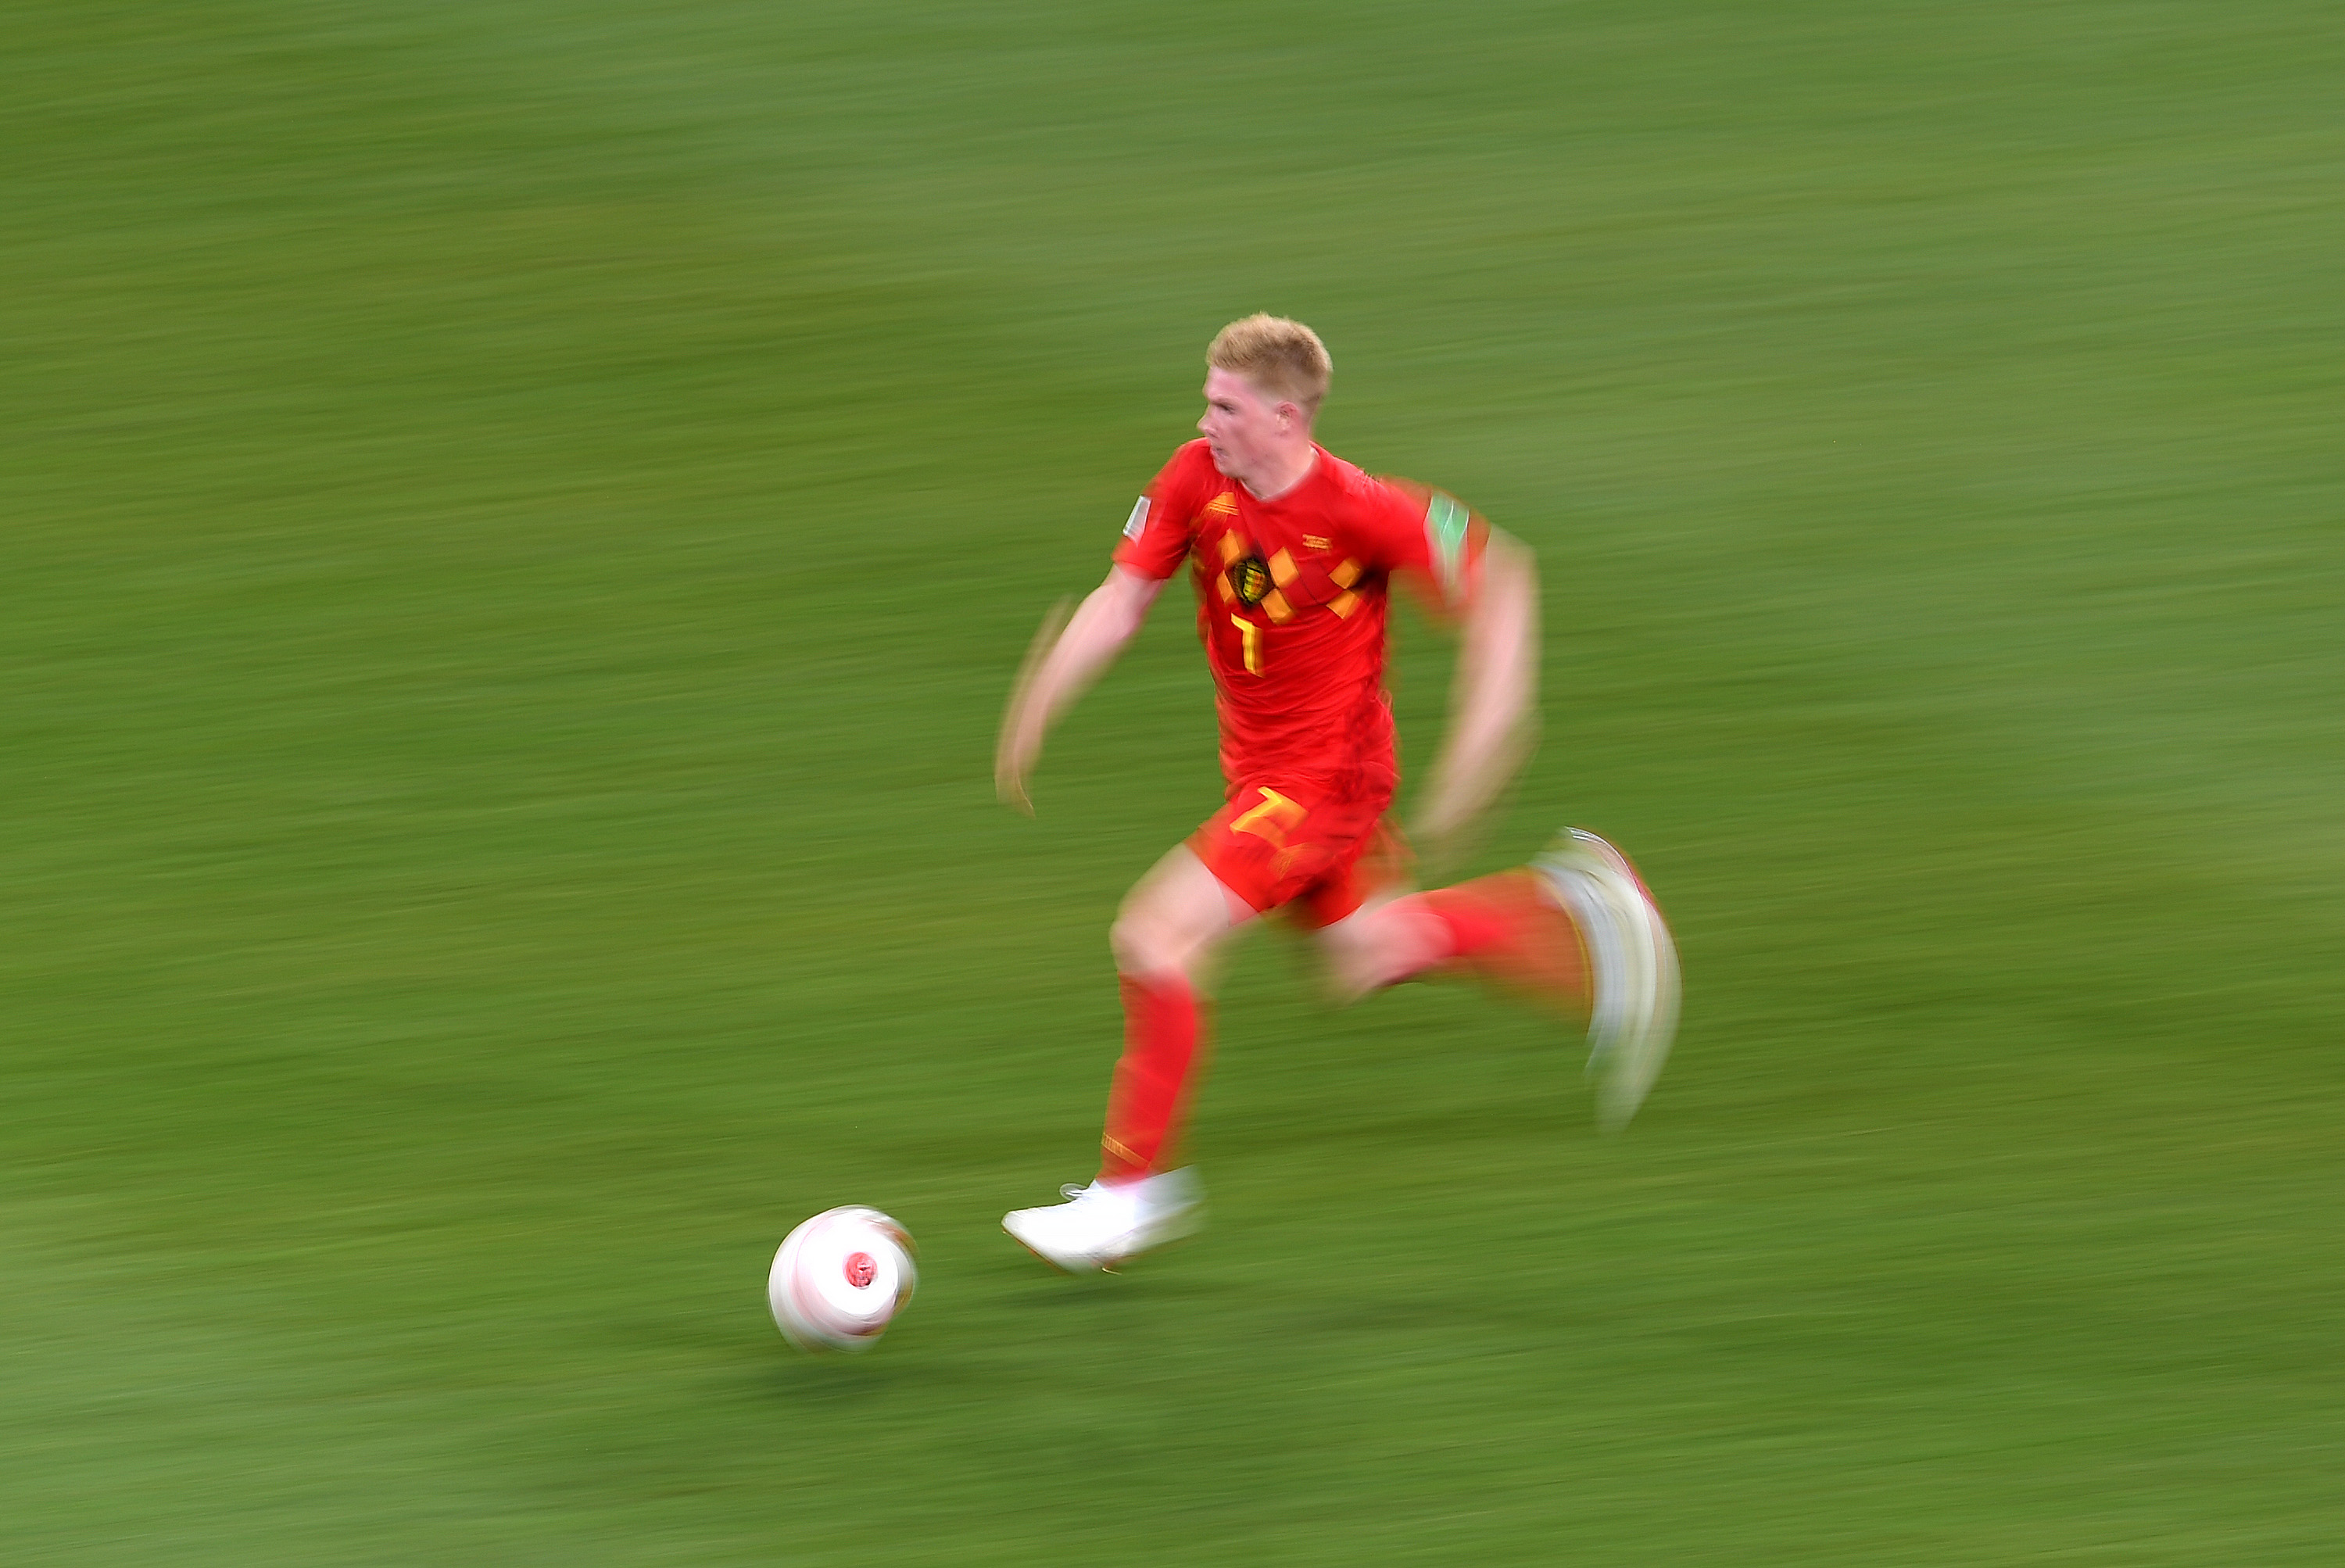 4 quick thoughts on Kevin De Bruyne's brilliant goal to give Belgium a 2-0 lead over Brazil